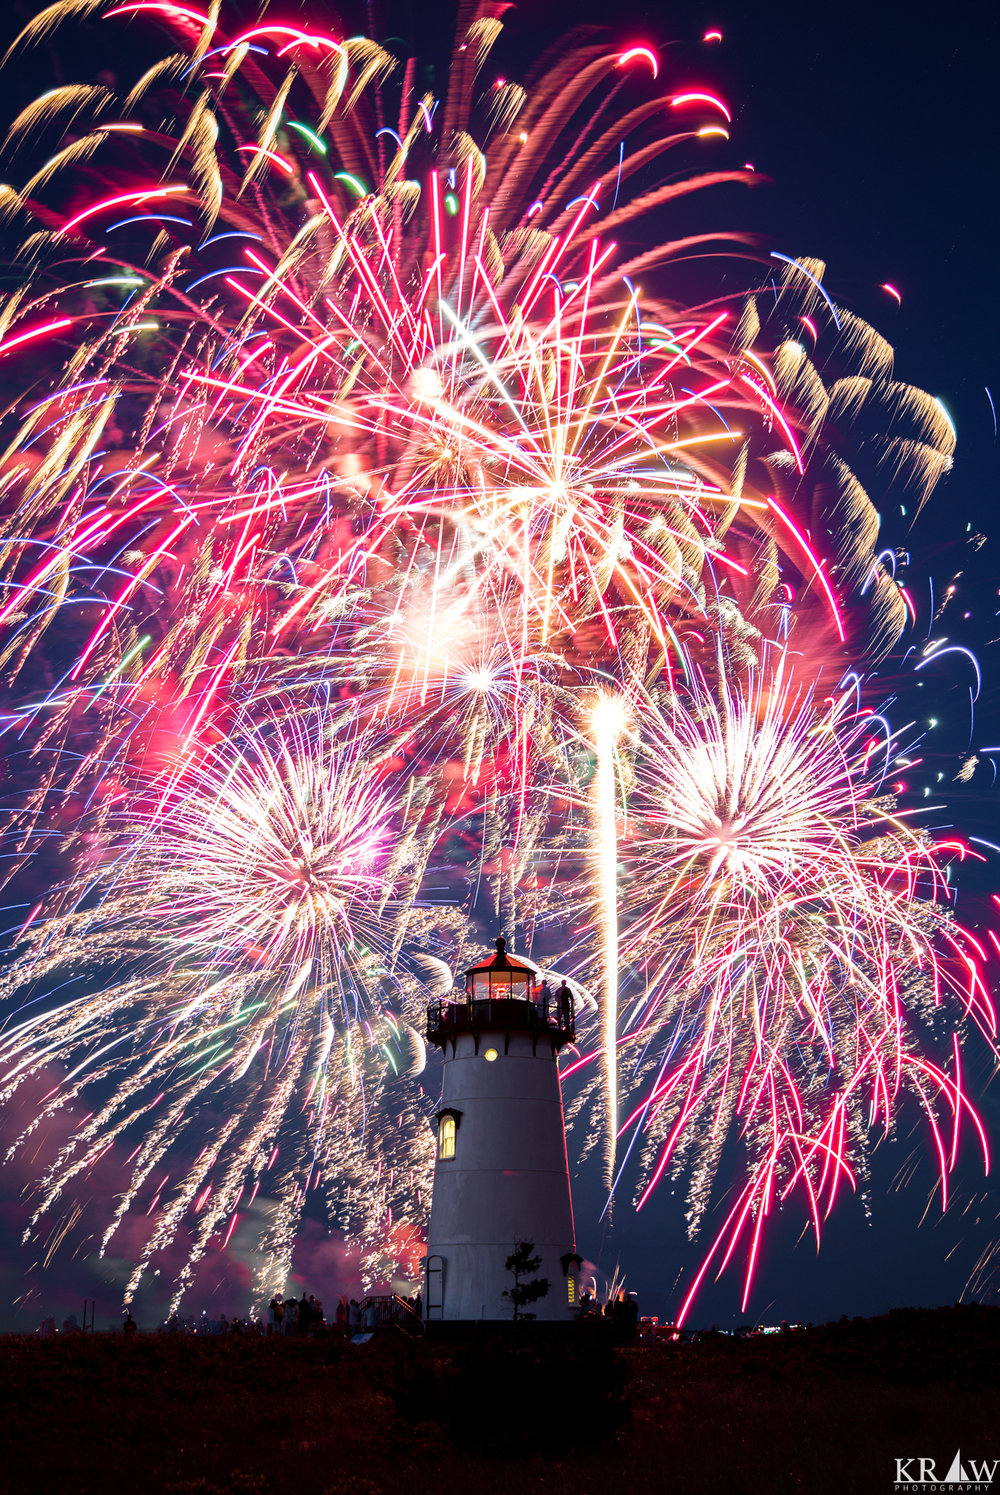 July 4th Fireworks over Edgartown Lighthouse